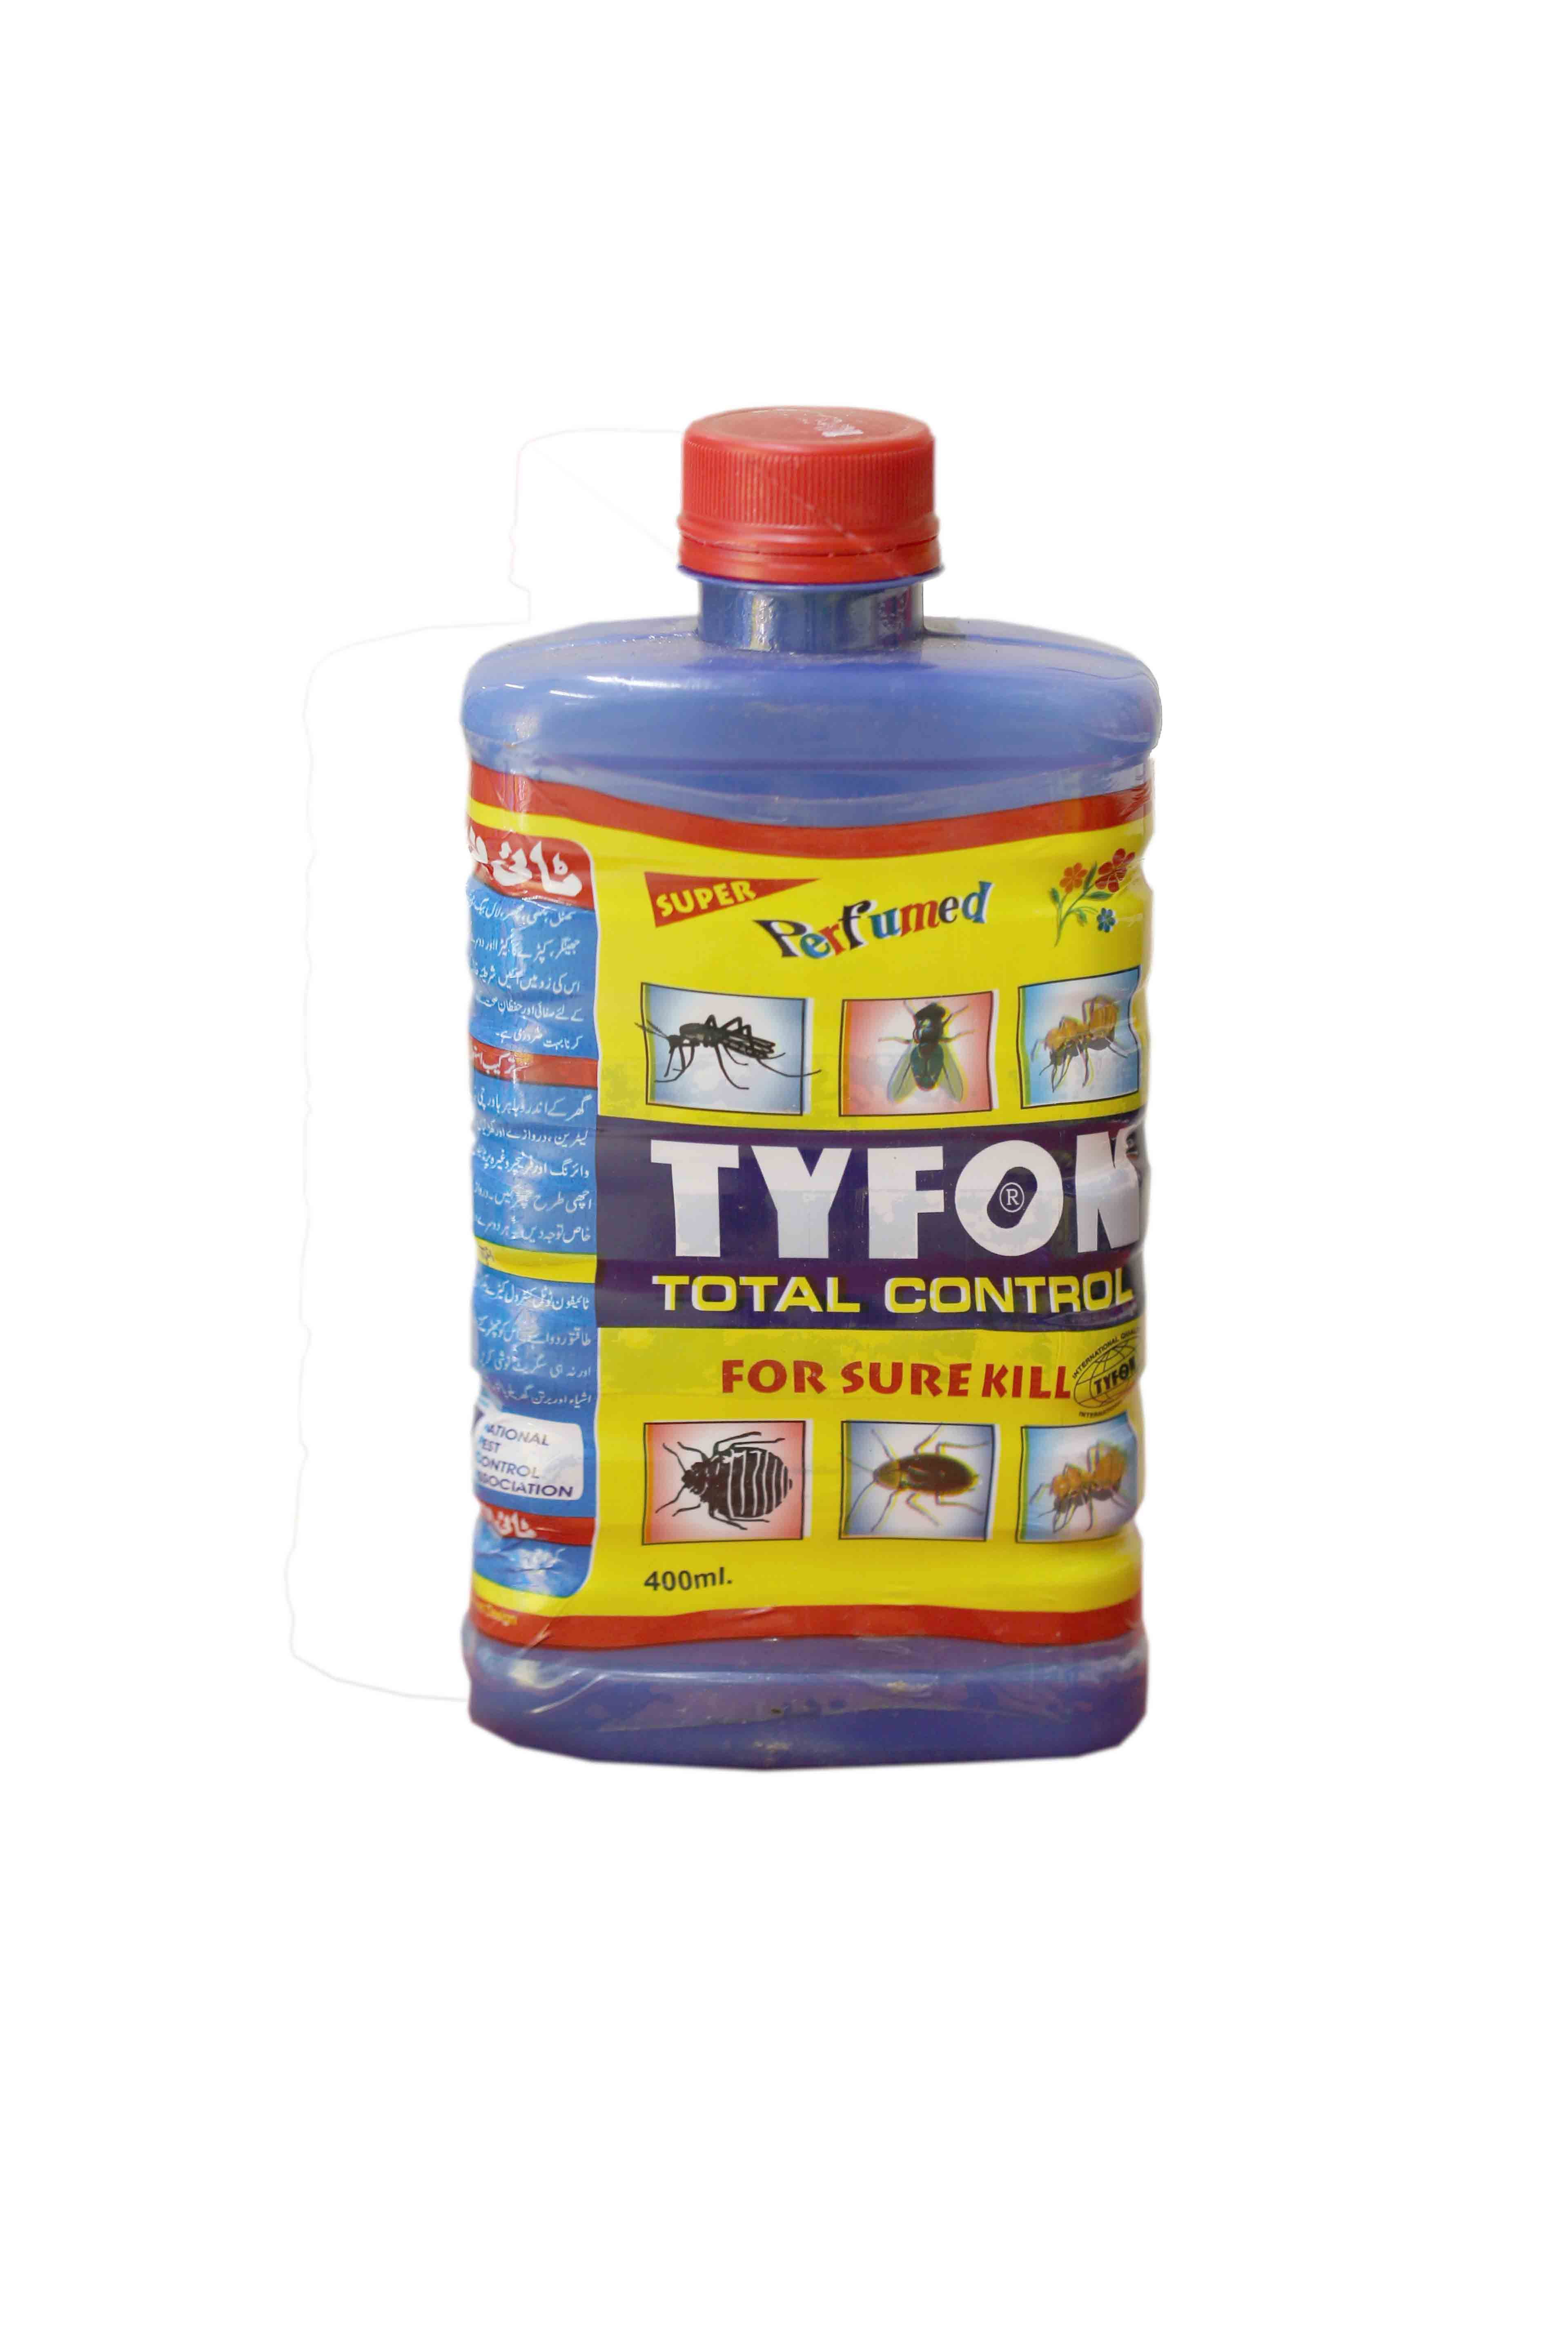 Tyfon Total Control Oil Spray 400ml